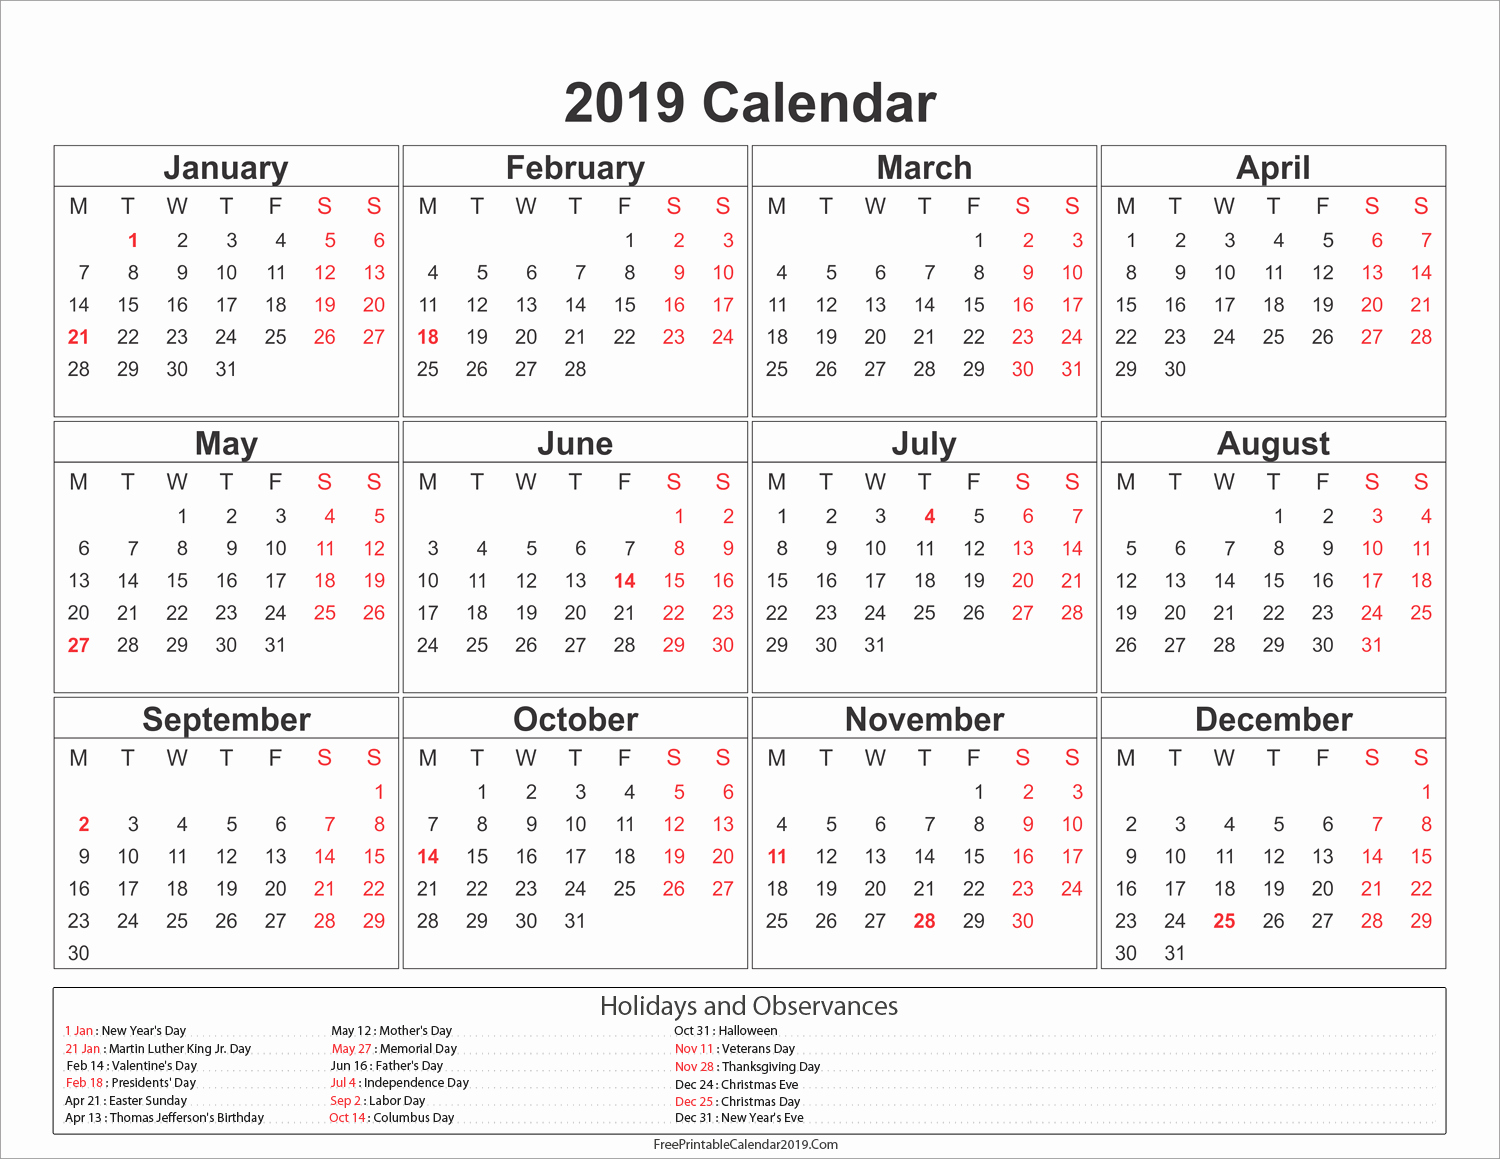 Free Printable 2019 Yearly Calendar Unique Free Printable Calendar 2019 with Holidays In Word Excel Pdf